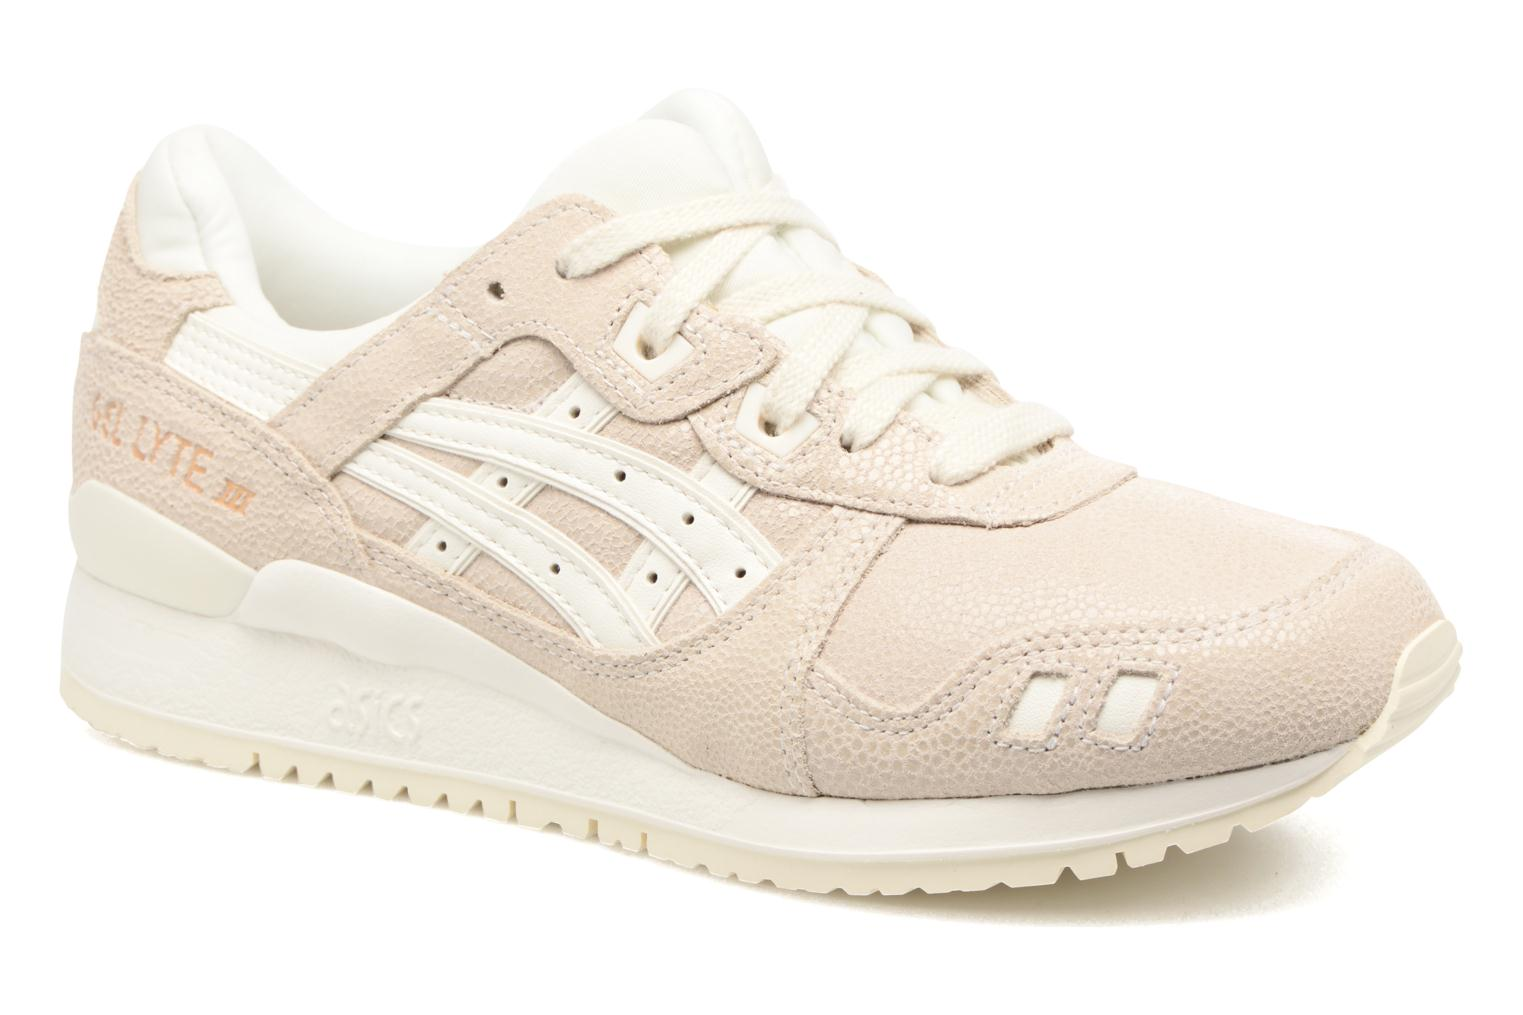 Gel-Lyte III W Cream/Cream